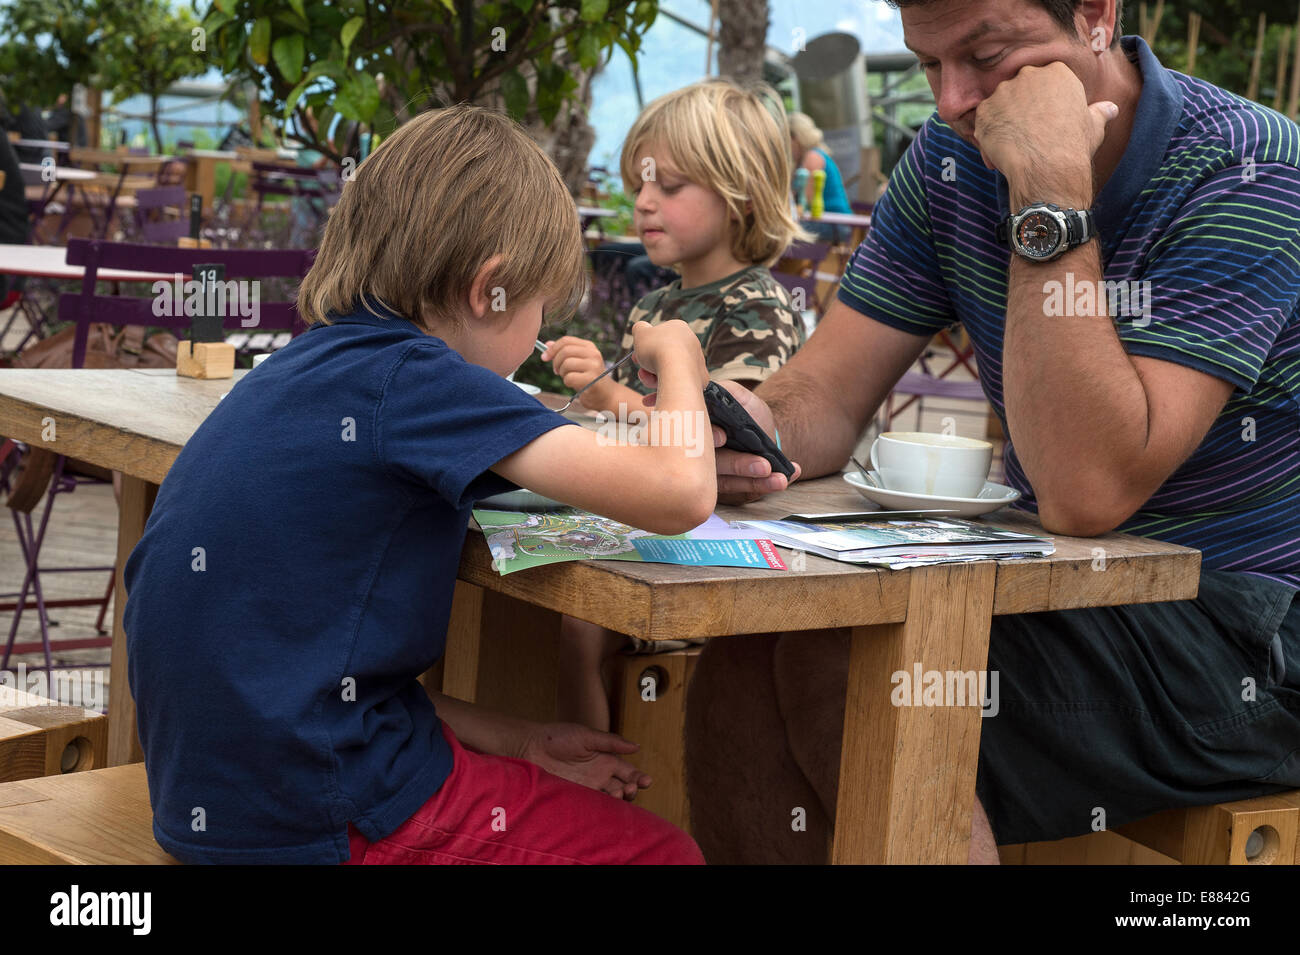 Father with children on holiday. Mobile phone prevents family interaction Cornwall England UK August - Stock Image